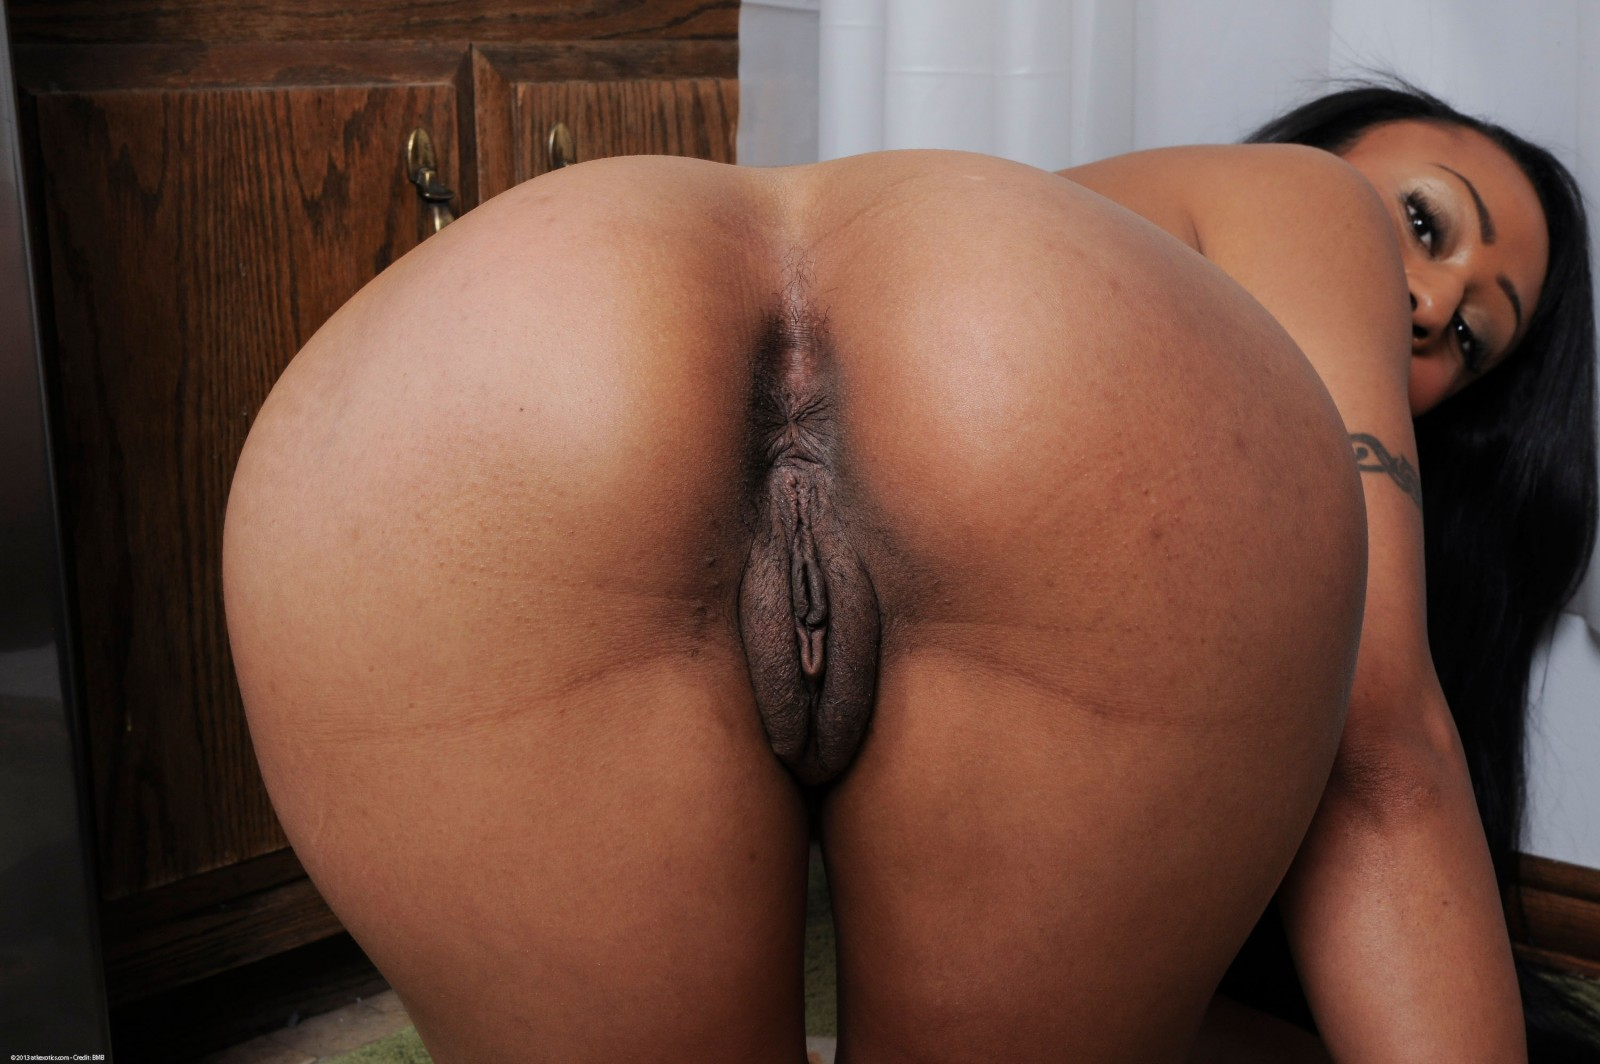 behind and from Nice pussy ass